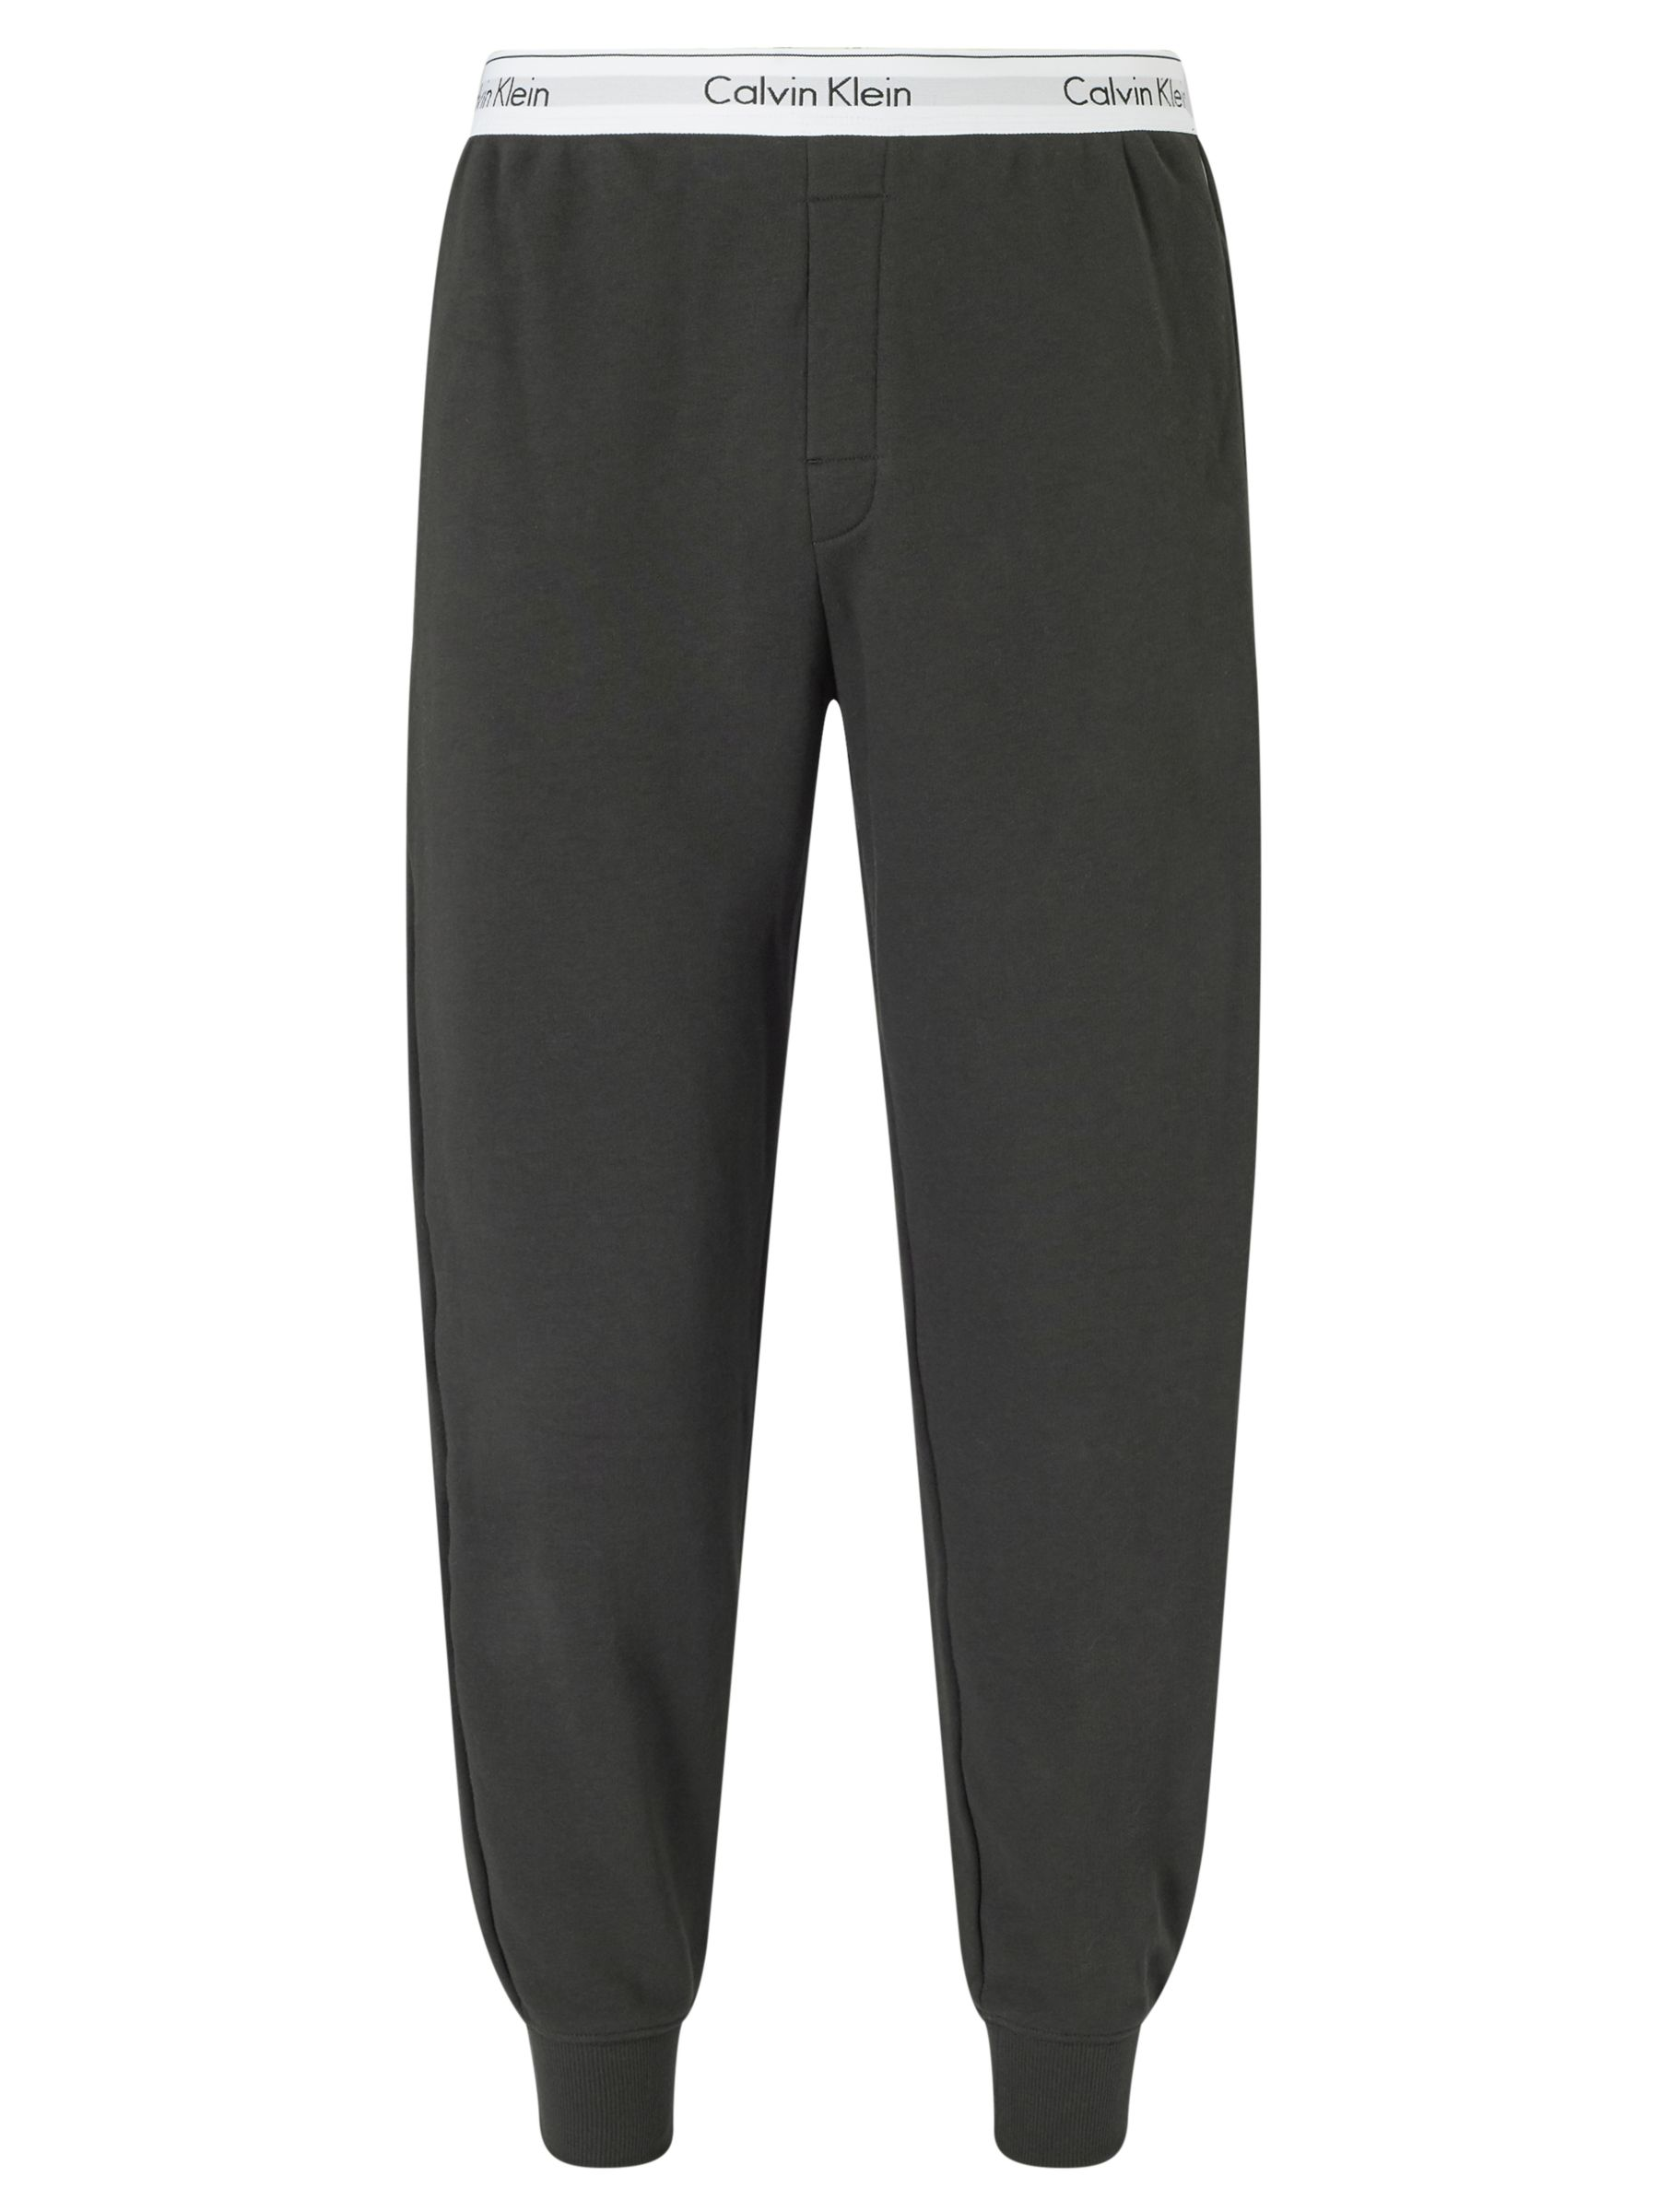 Buy Calvin Klein Modern Jogging Bottoms, Black, S Online at johnlewis.com